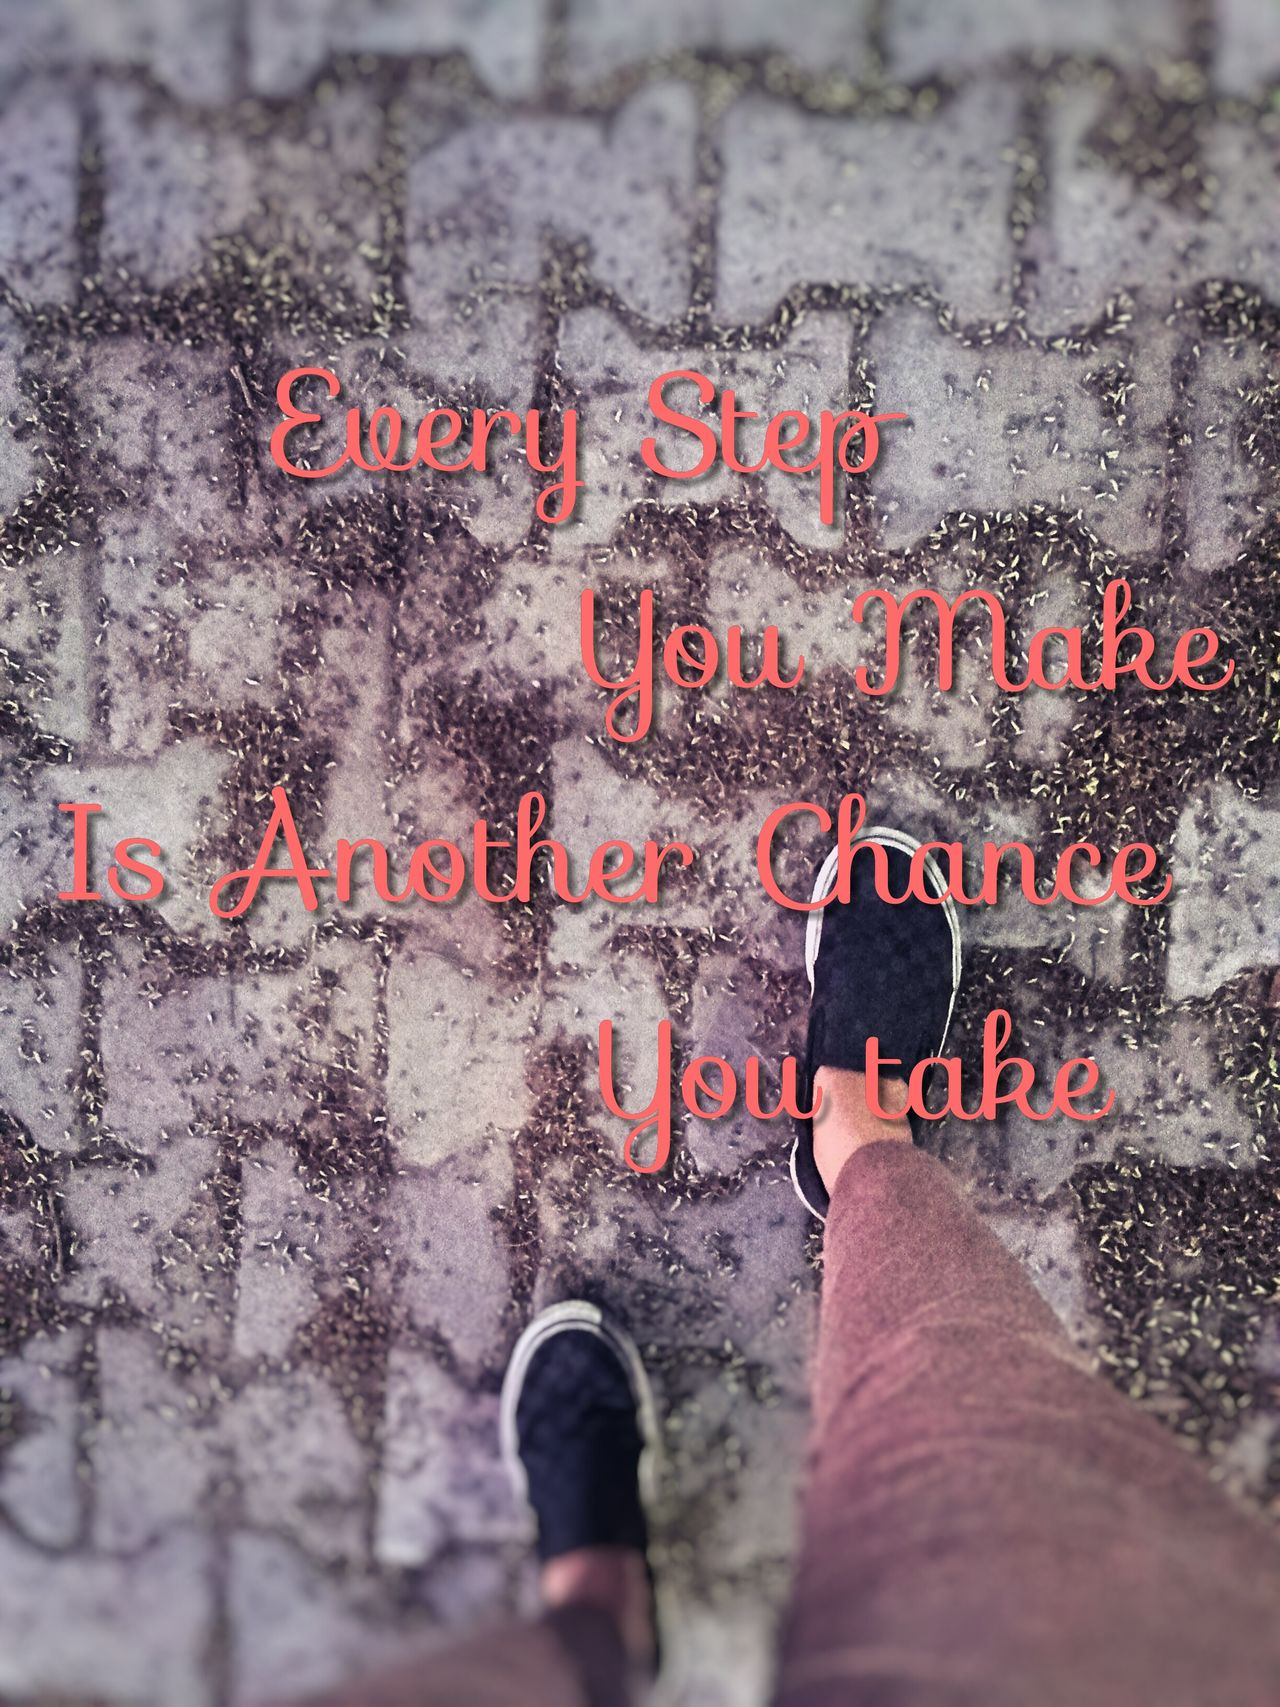 Feet On The Ground Quotesaboutlife Step By Step Lifegoals One Step At A Time No Looking Back Move Forward Walk Your Way No Distraction Stay Focused